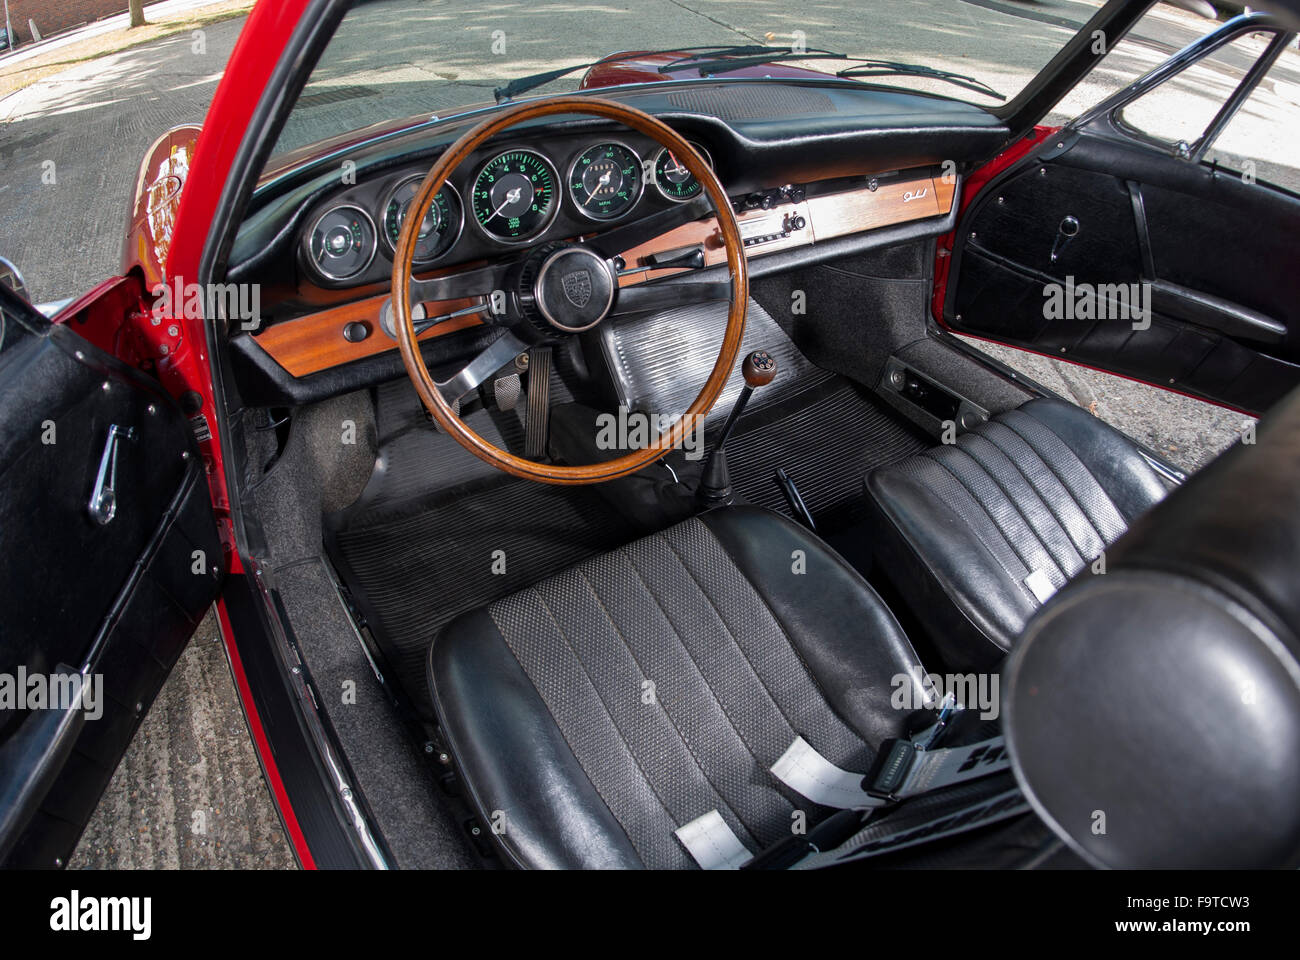 1966 porsche 911 classic german air cooled sports car interior stock photo royalty free image. Black Bedroom Furniture Sets. Home Design Ideas